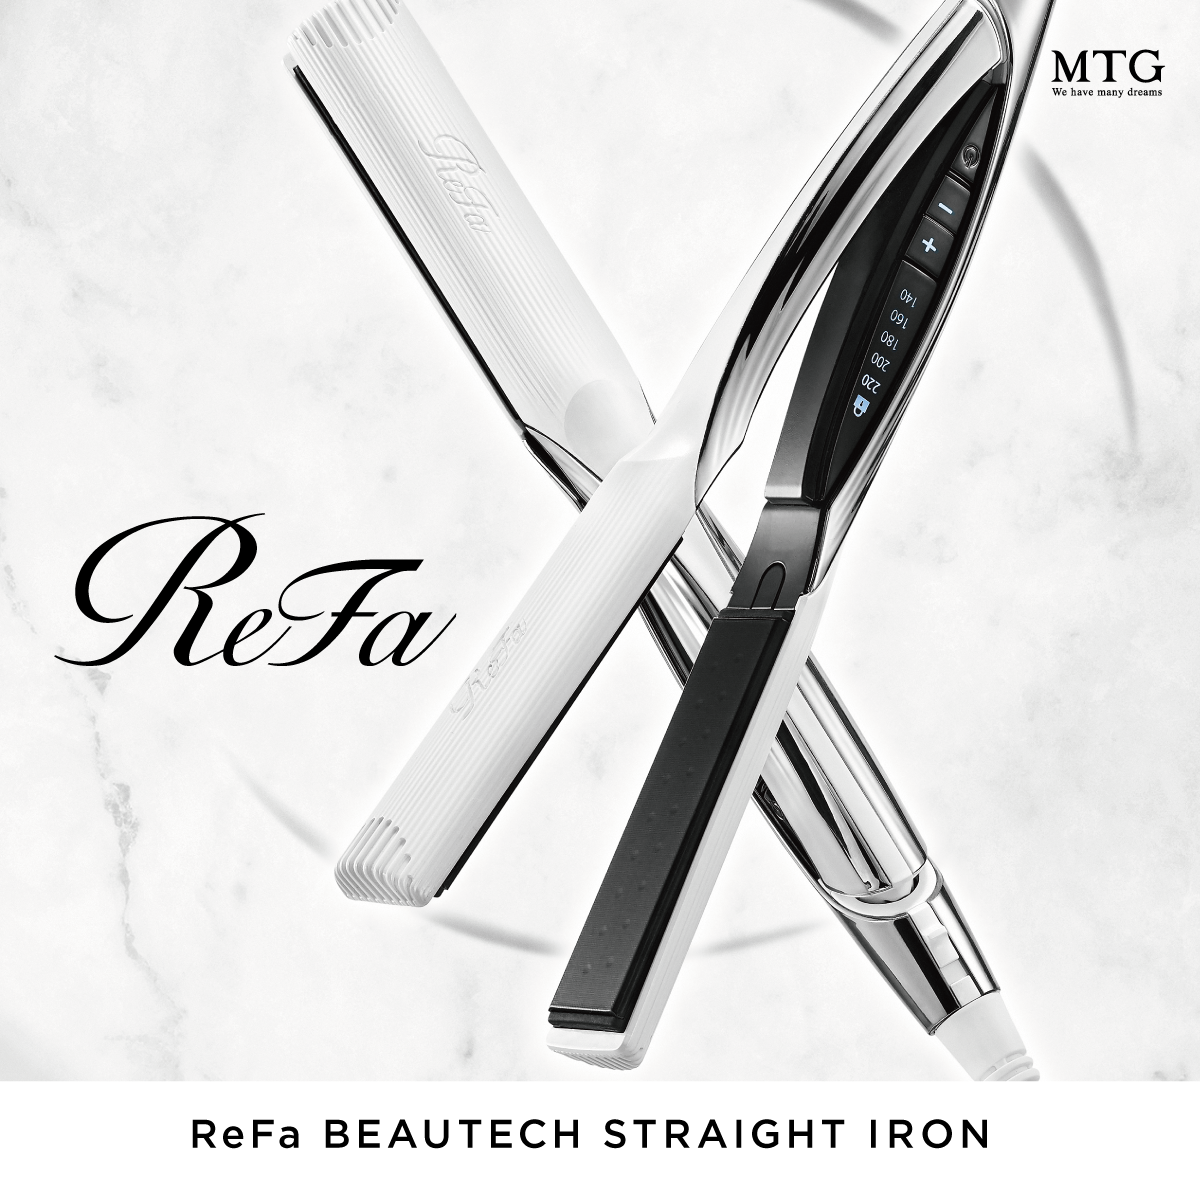 ReFa BEAUTECH STRAIGHT IRON